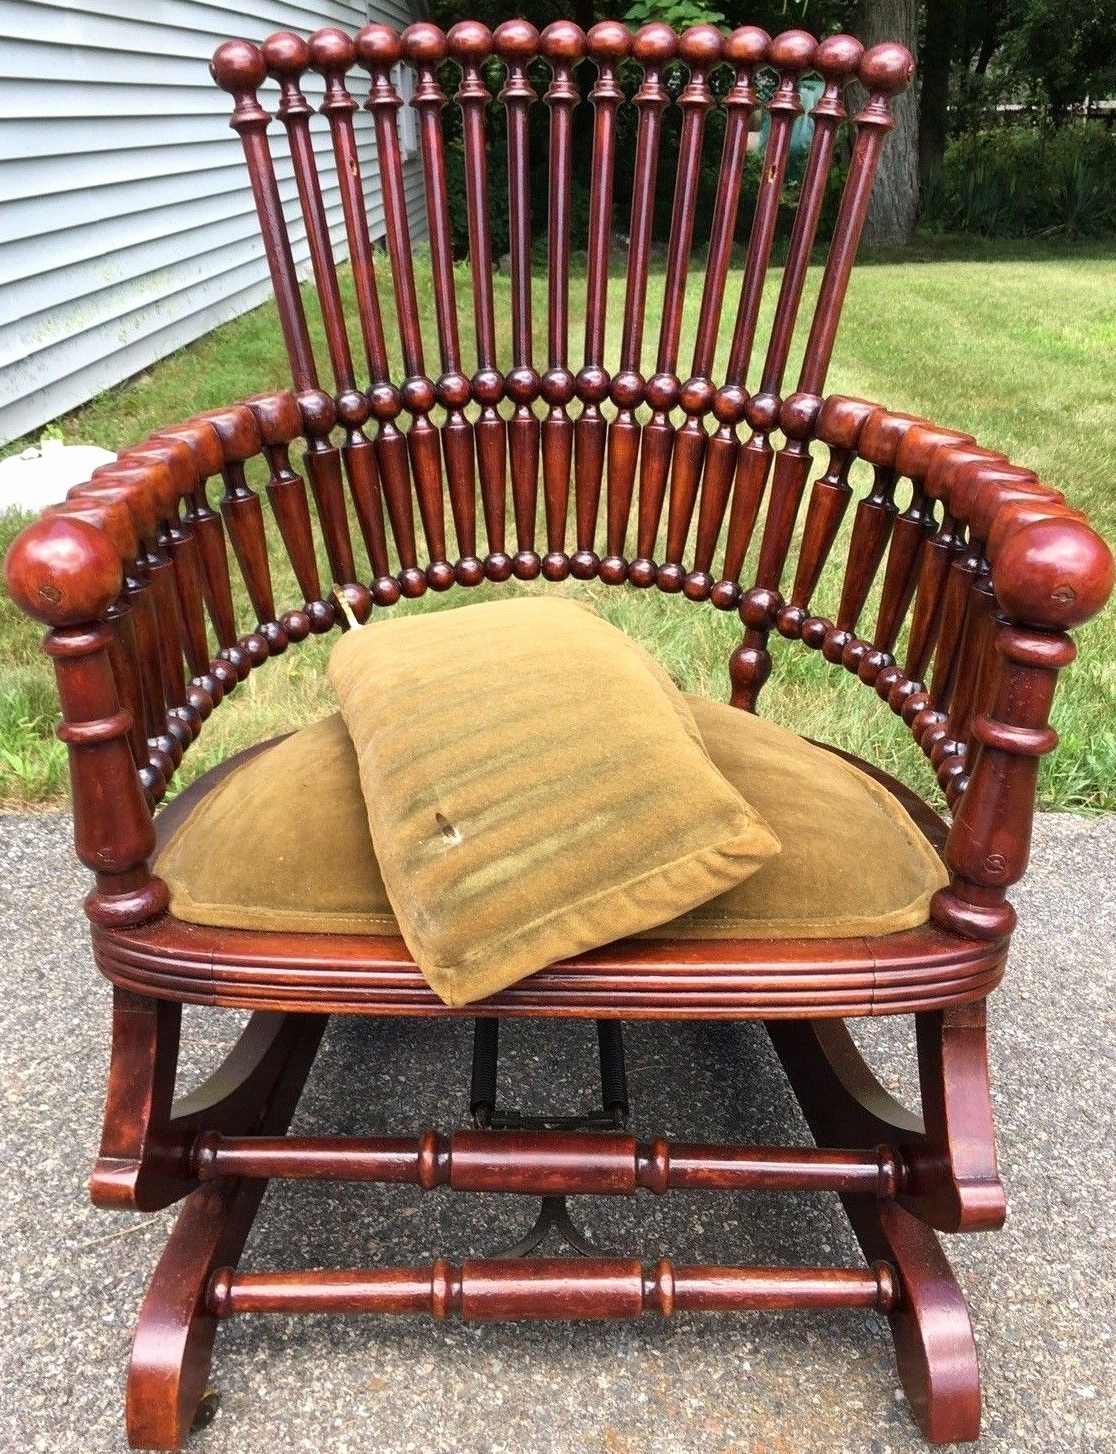 Preferred Old Fashioned Rocking Chairs With 20 Best Of Old Fashioned Rocking Chair (View 9 of 15)